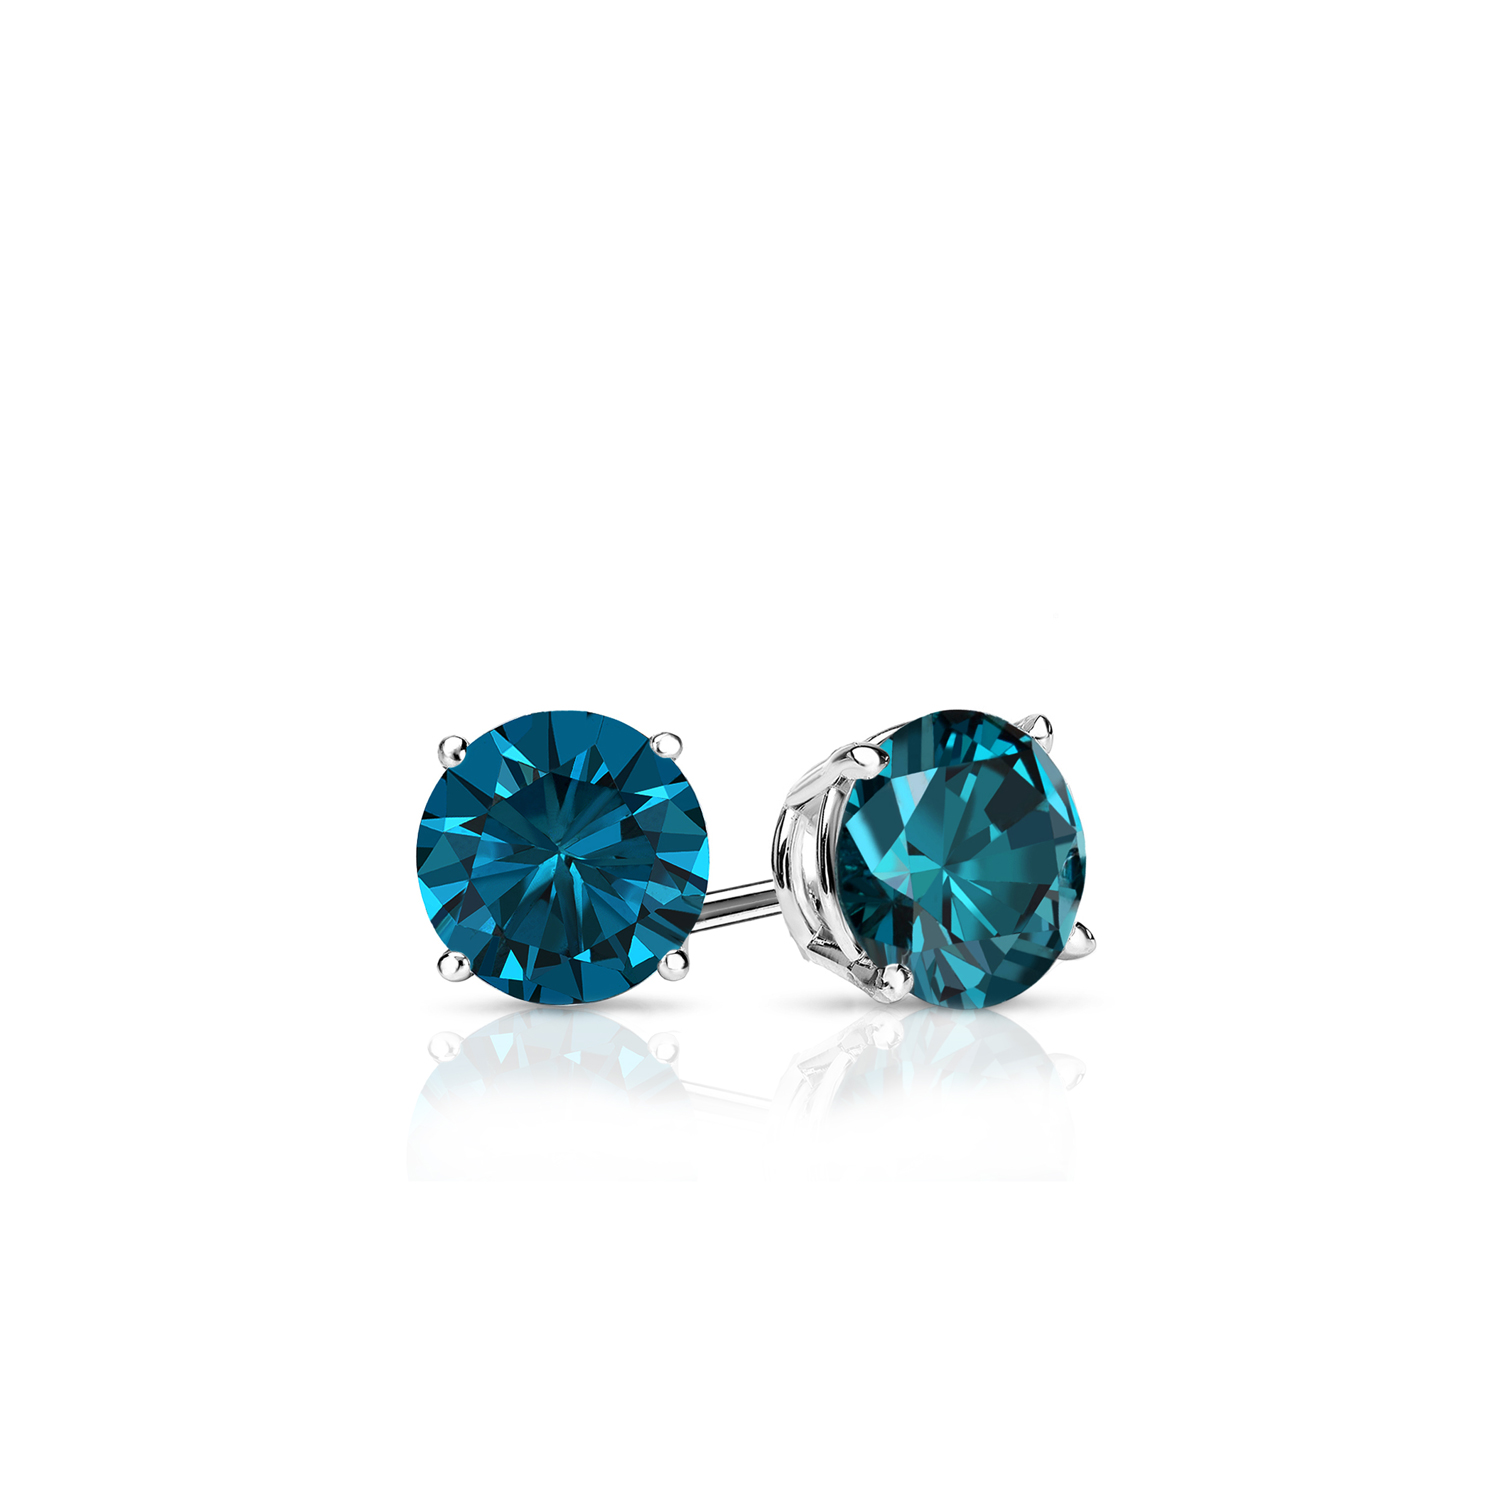 blue diamond guys Shop for blue diamond ring on etsy, the place to express your creativity through the buying and selling of handmade and vintage goods.